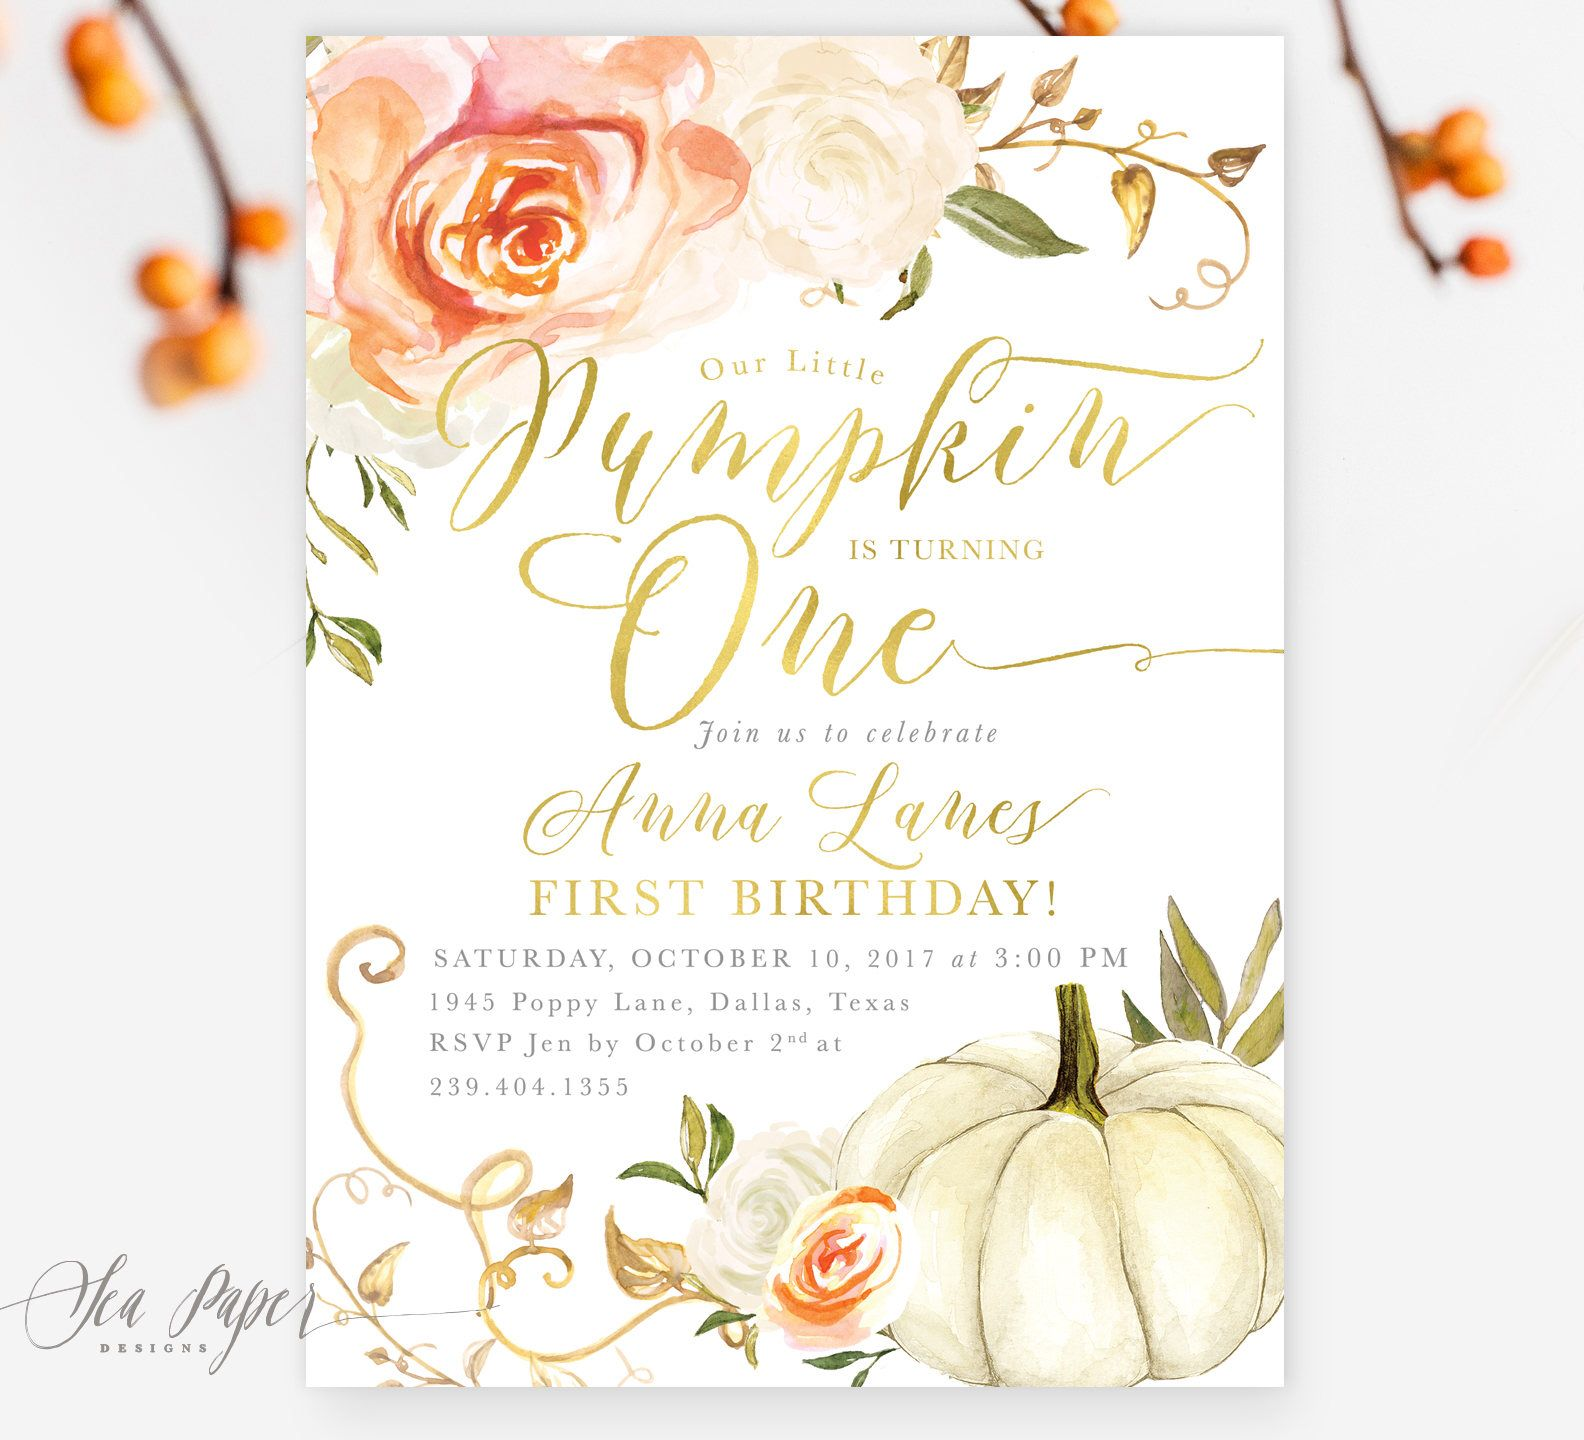 Fall Birthday Invitation Our Little Pumpkin is Turning e First